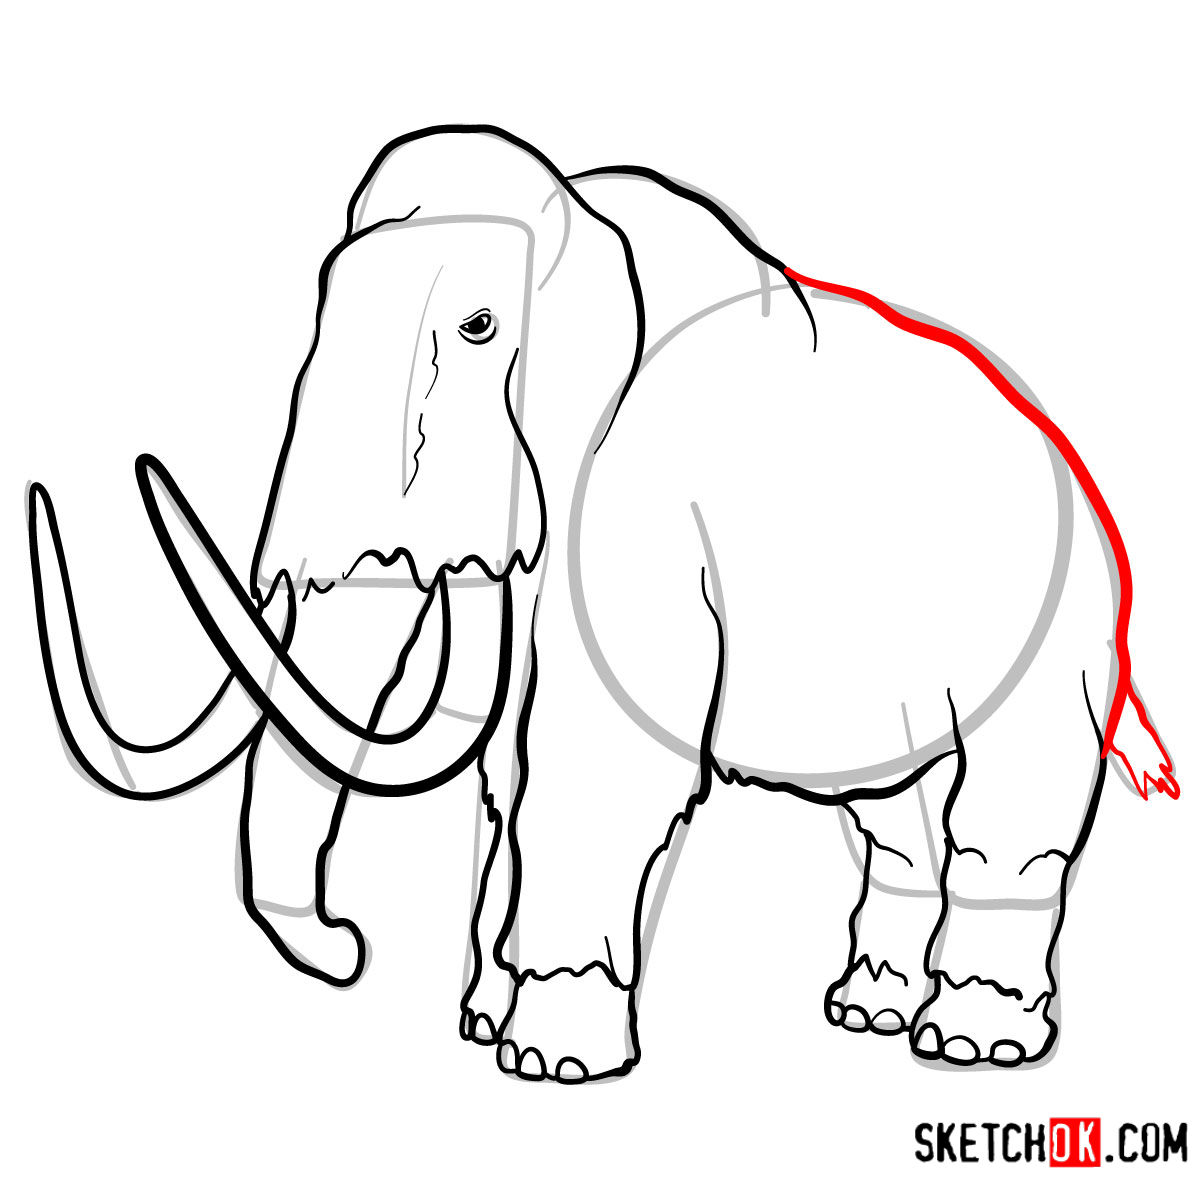 How to draw a Woolly mammoth | Extinct Animals - step 11